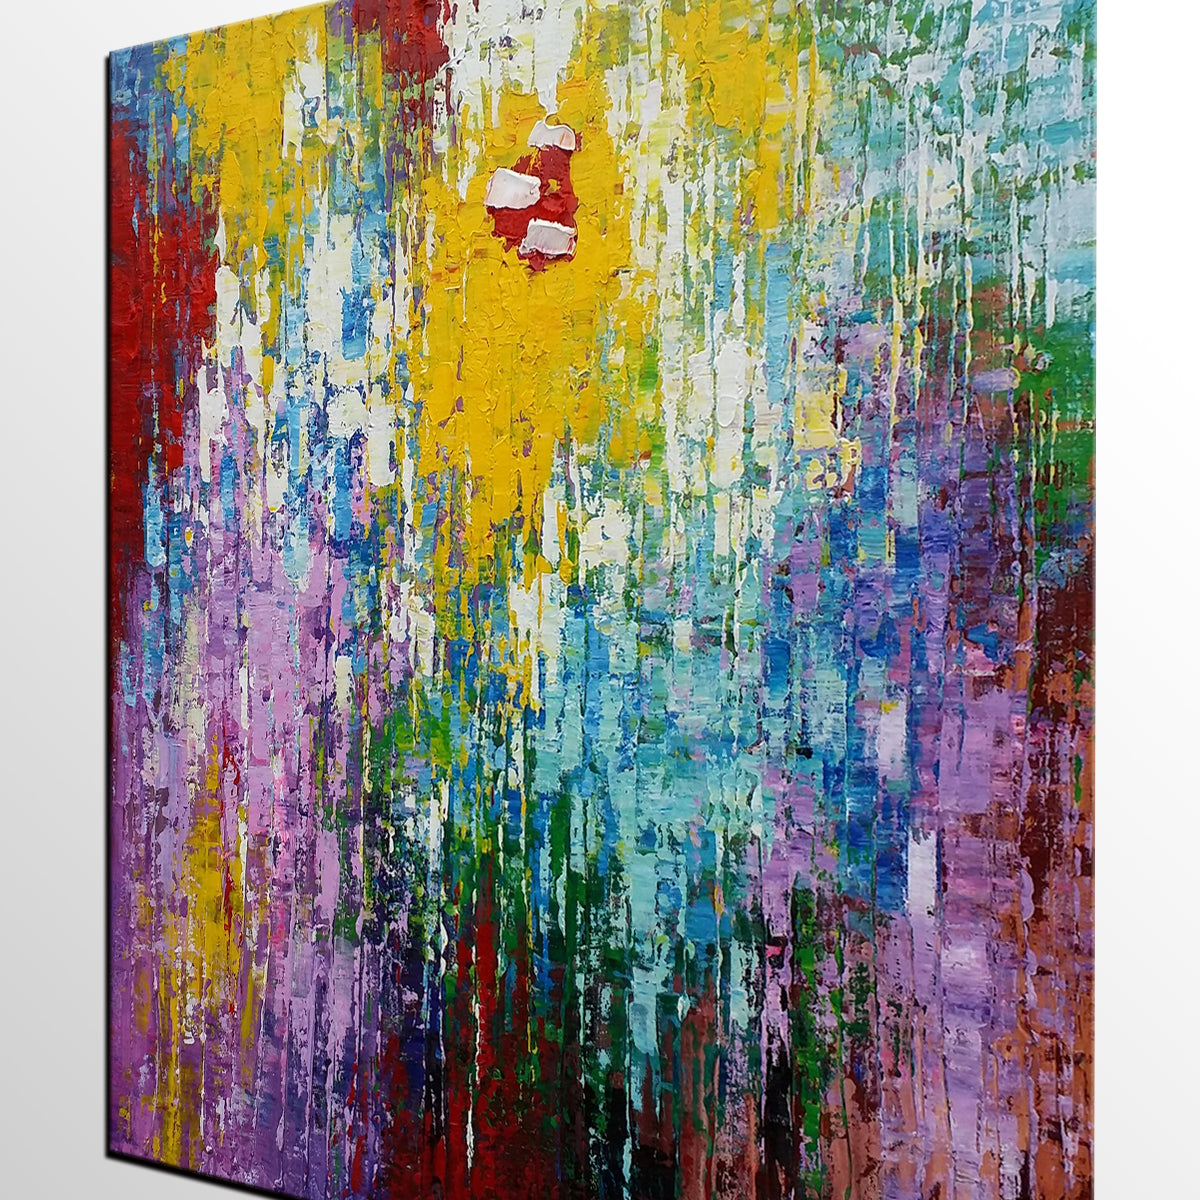 Home Painting, Abstract Art, Large Wall Art, Large Art, Canvas Art, Wall Art, Original Artwork, Canvas Painting, Modern Art, Acrylic Painting 197